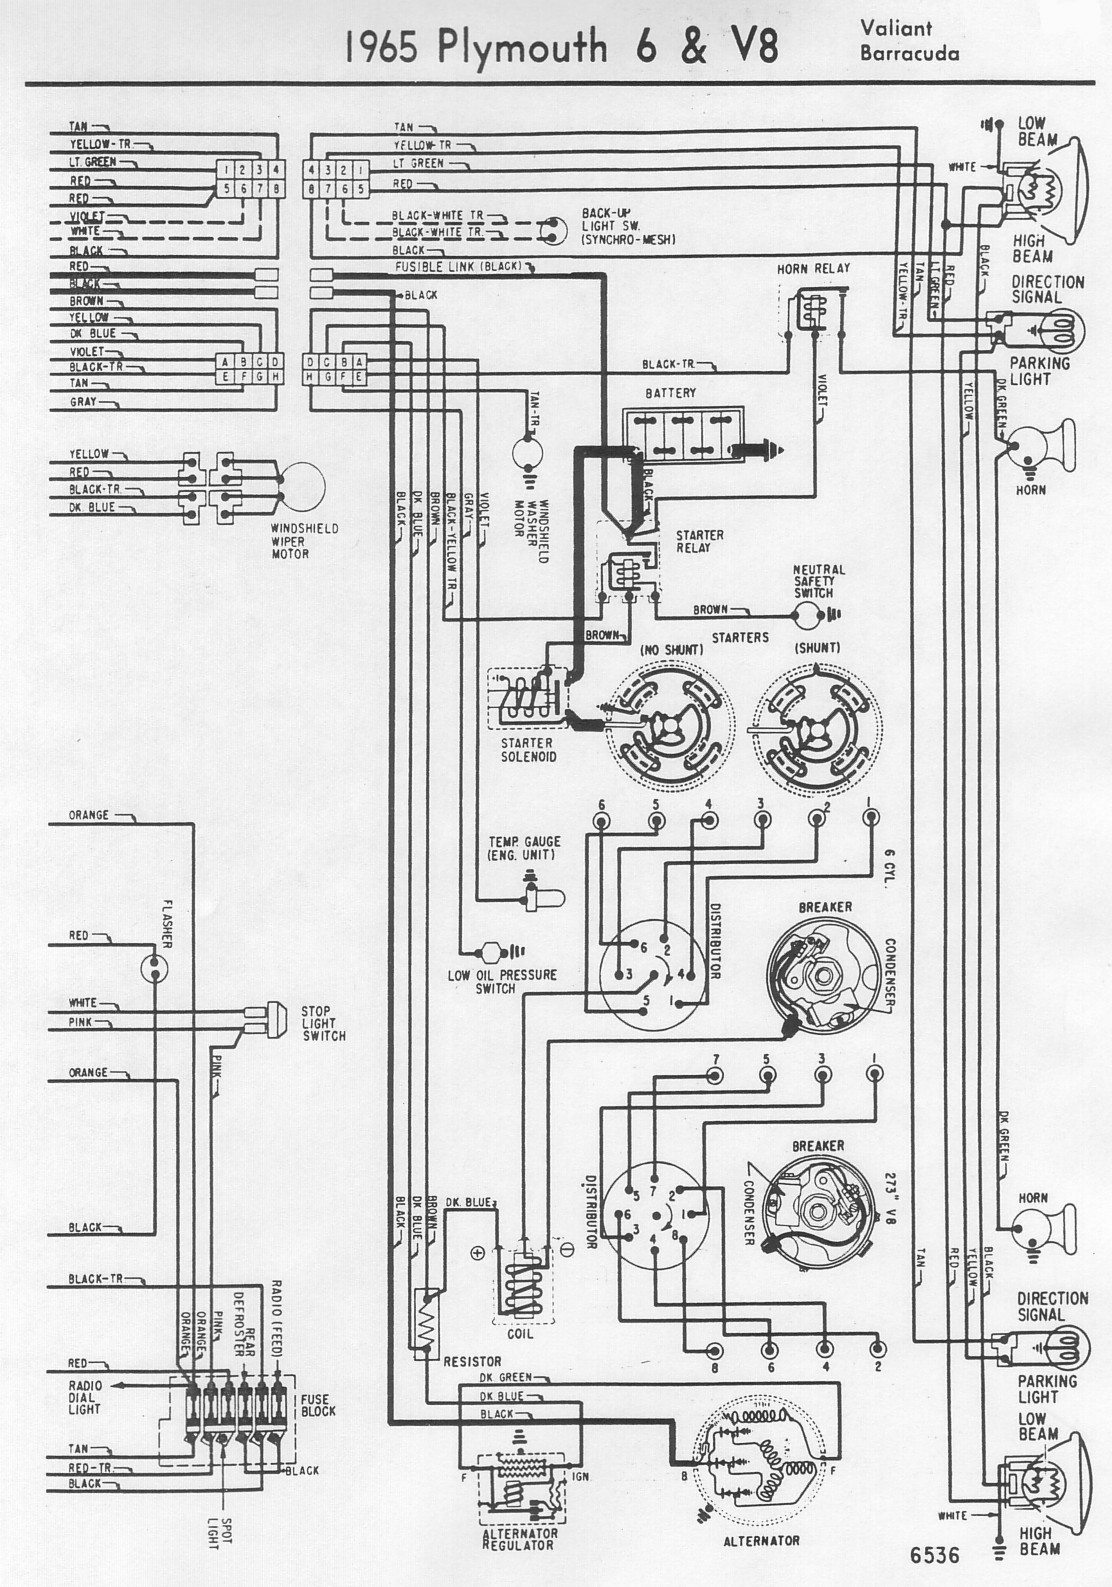 1970 Cuda Engine Wiring Diagram Opinions About 68 Vw Speedo 6 1971 24 Images Diagrams Omegahost Co 1969 Plymouth Road Runner 91 Mustang Dash Schematic